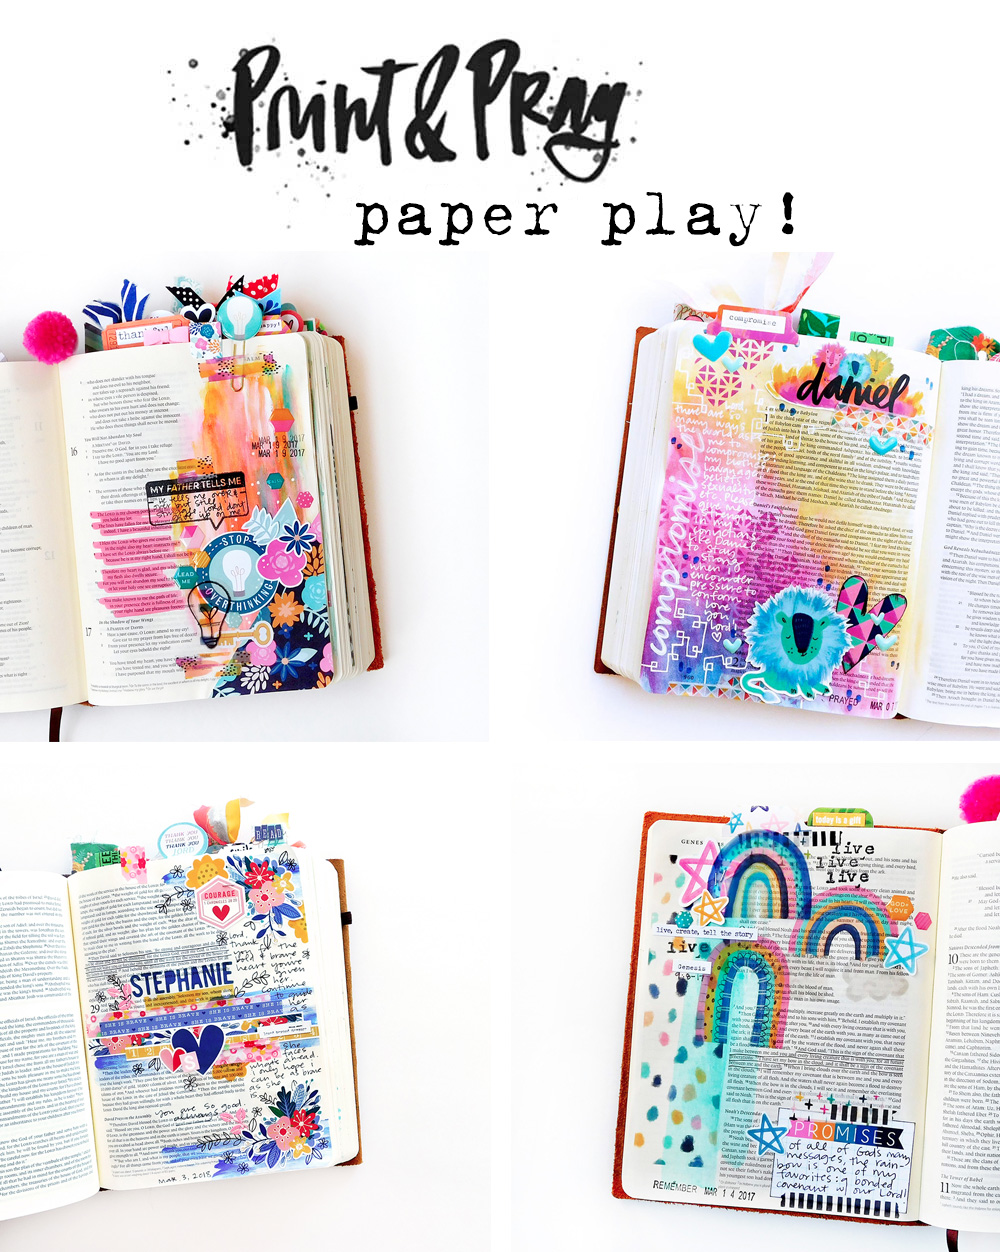 Paper Play - Print & Pray Project Round-Up! by Elaine Davis using digital printables